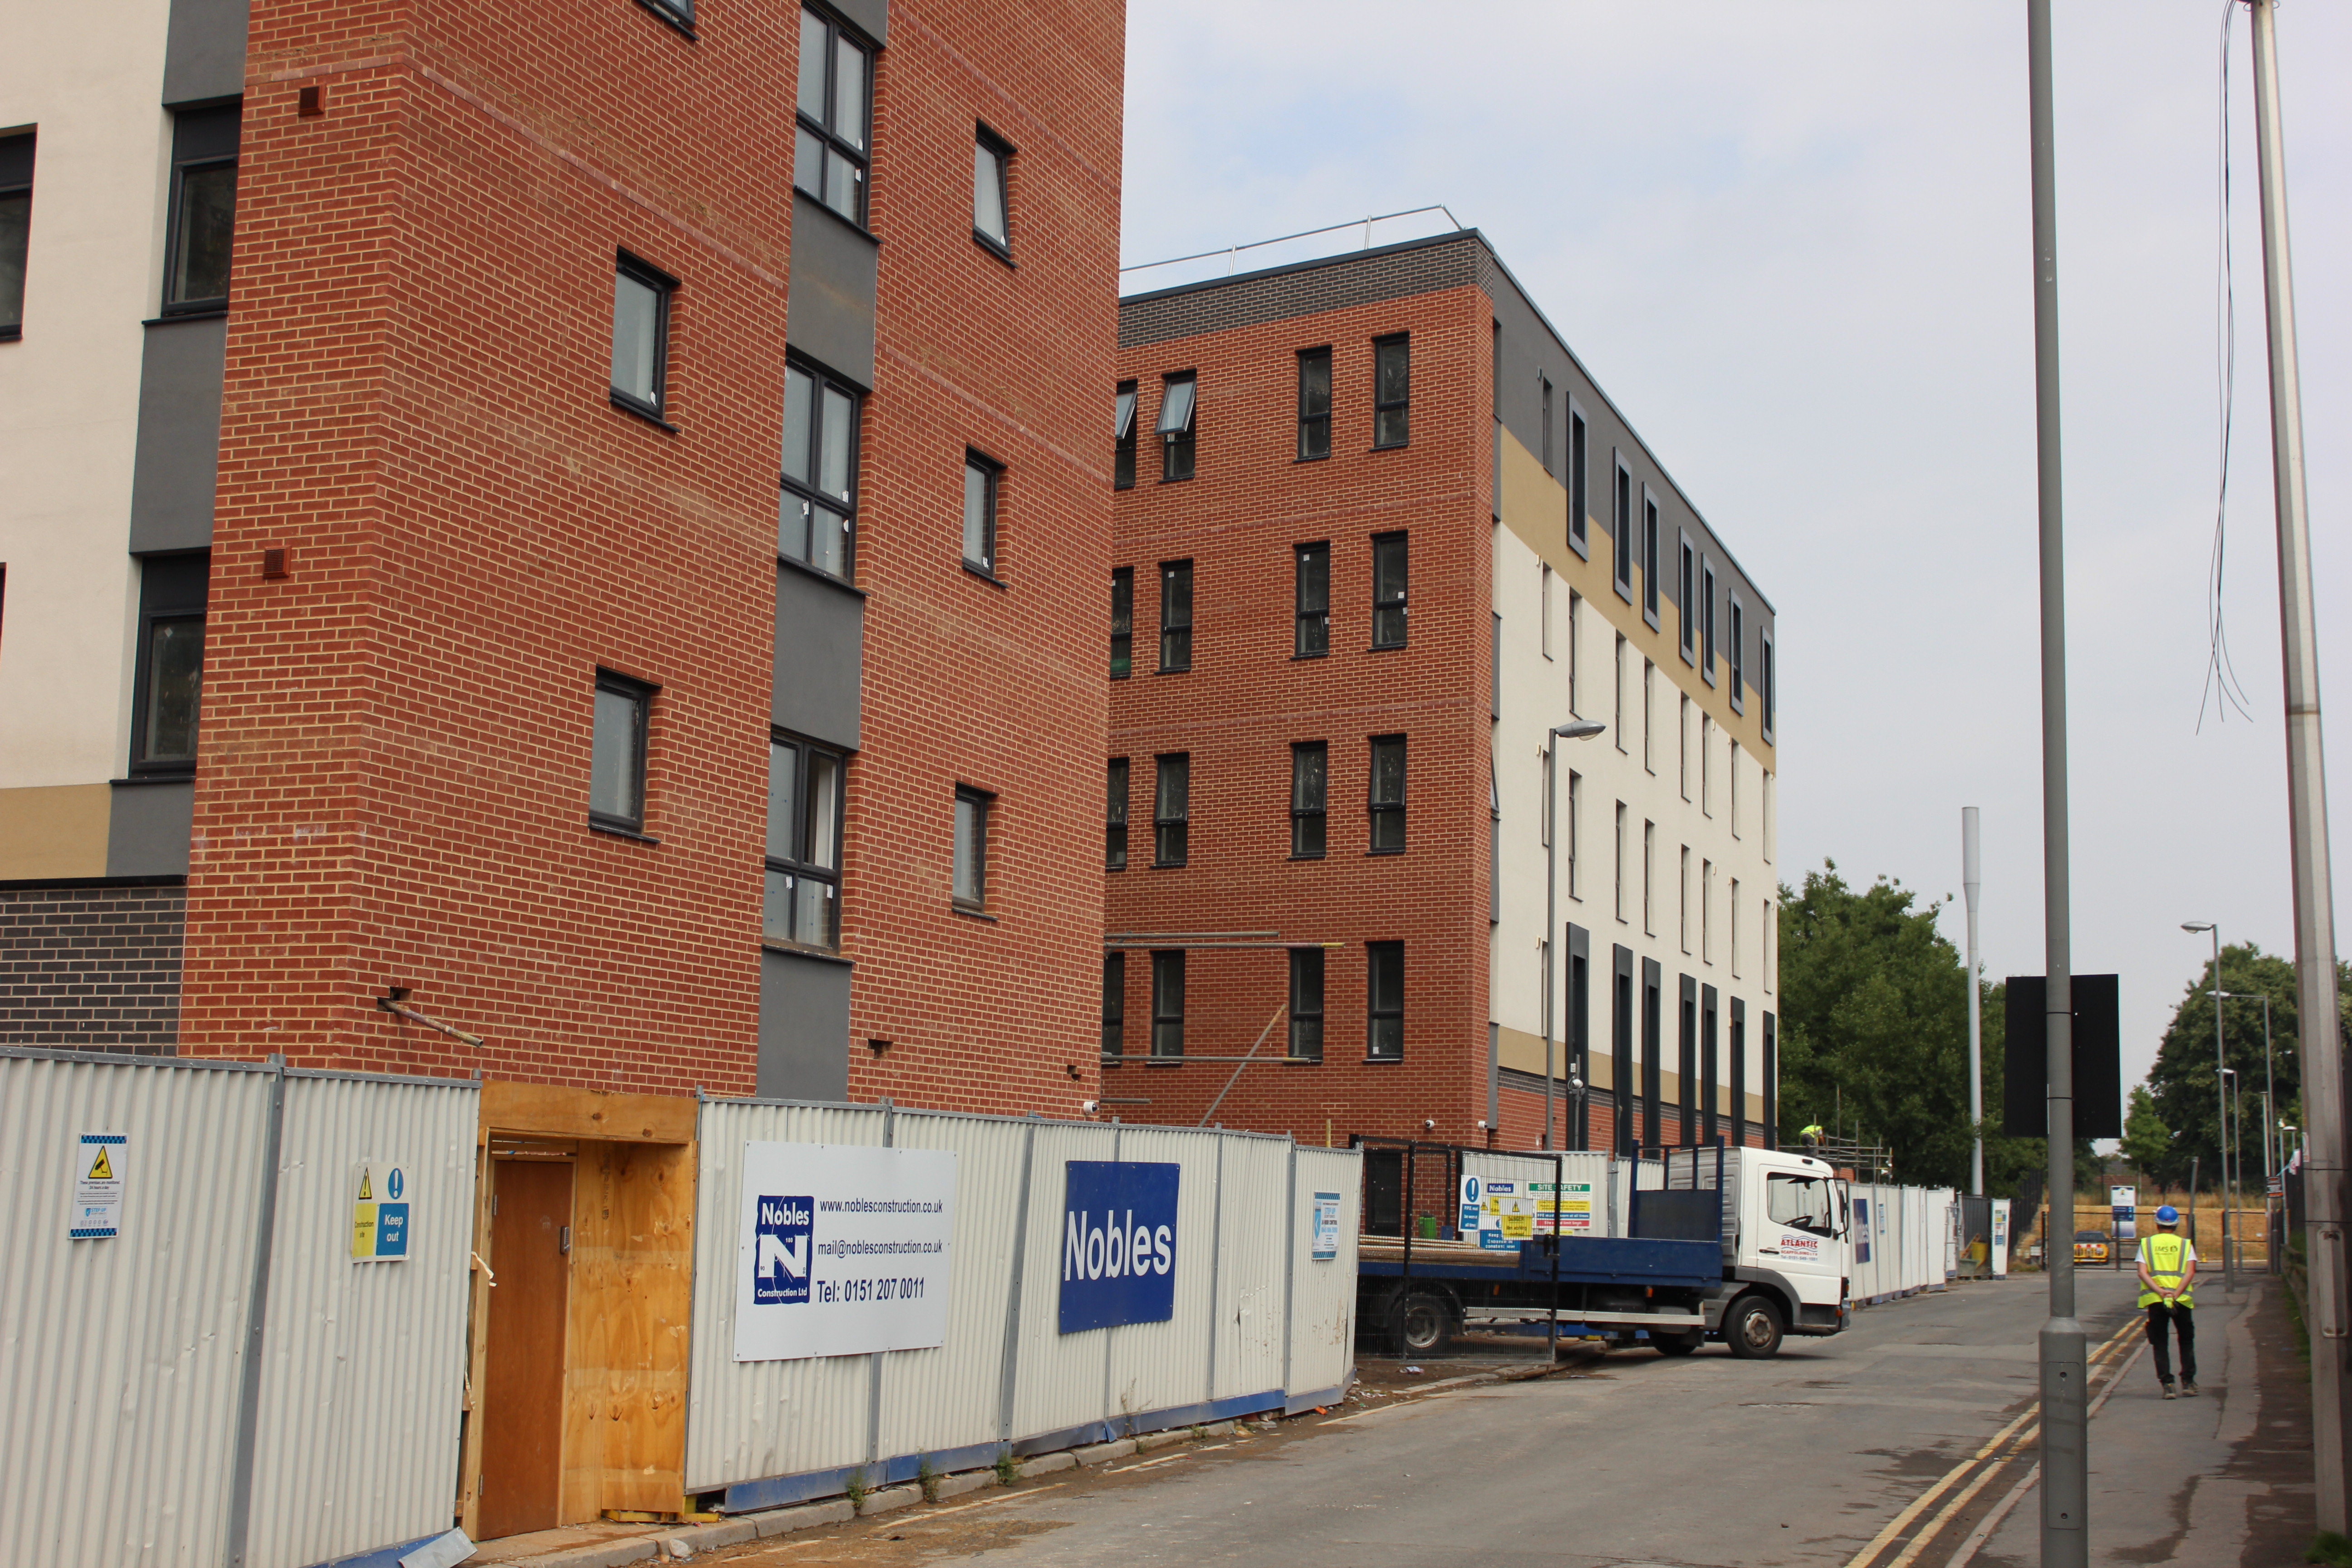 Student Accommodation - Nobles